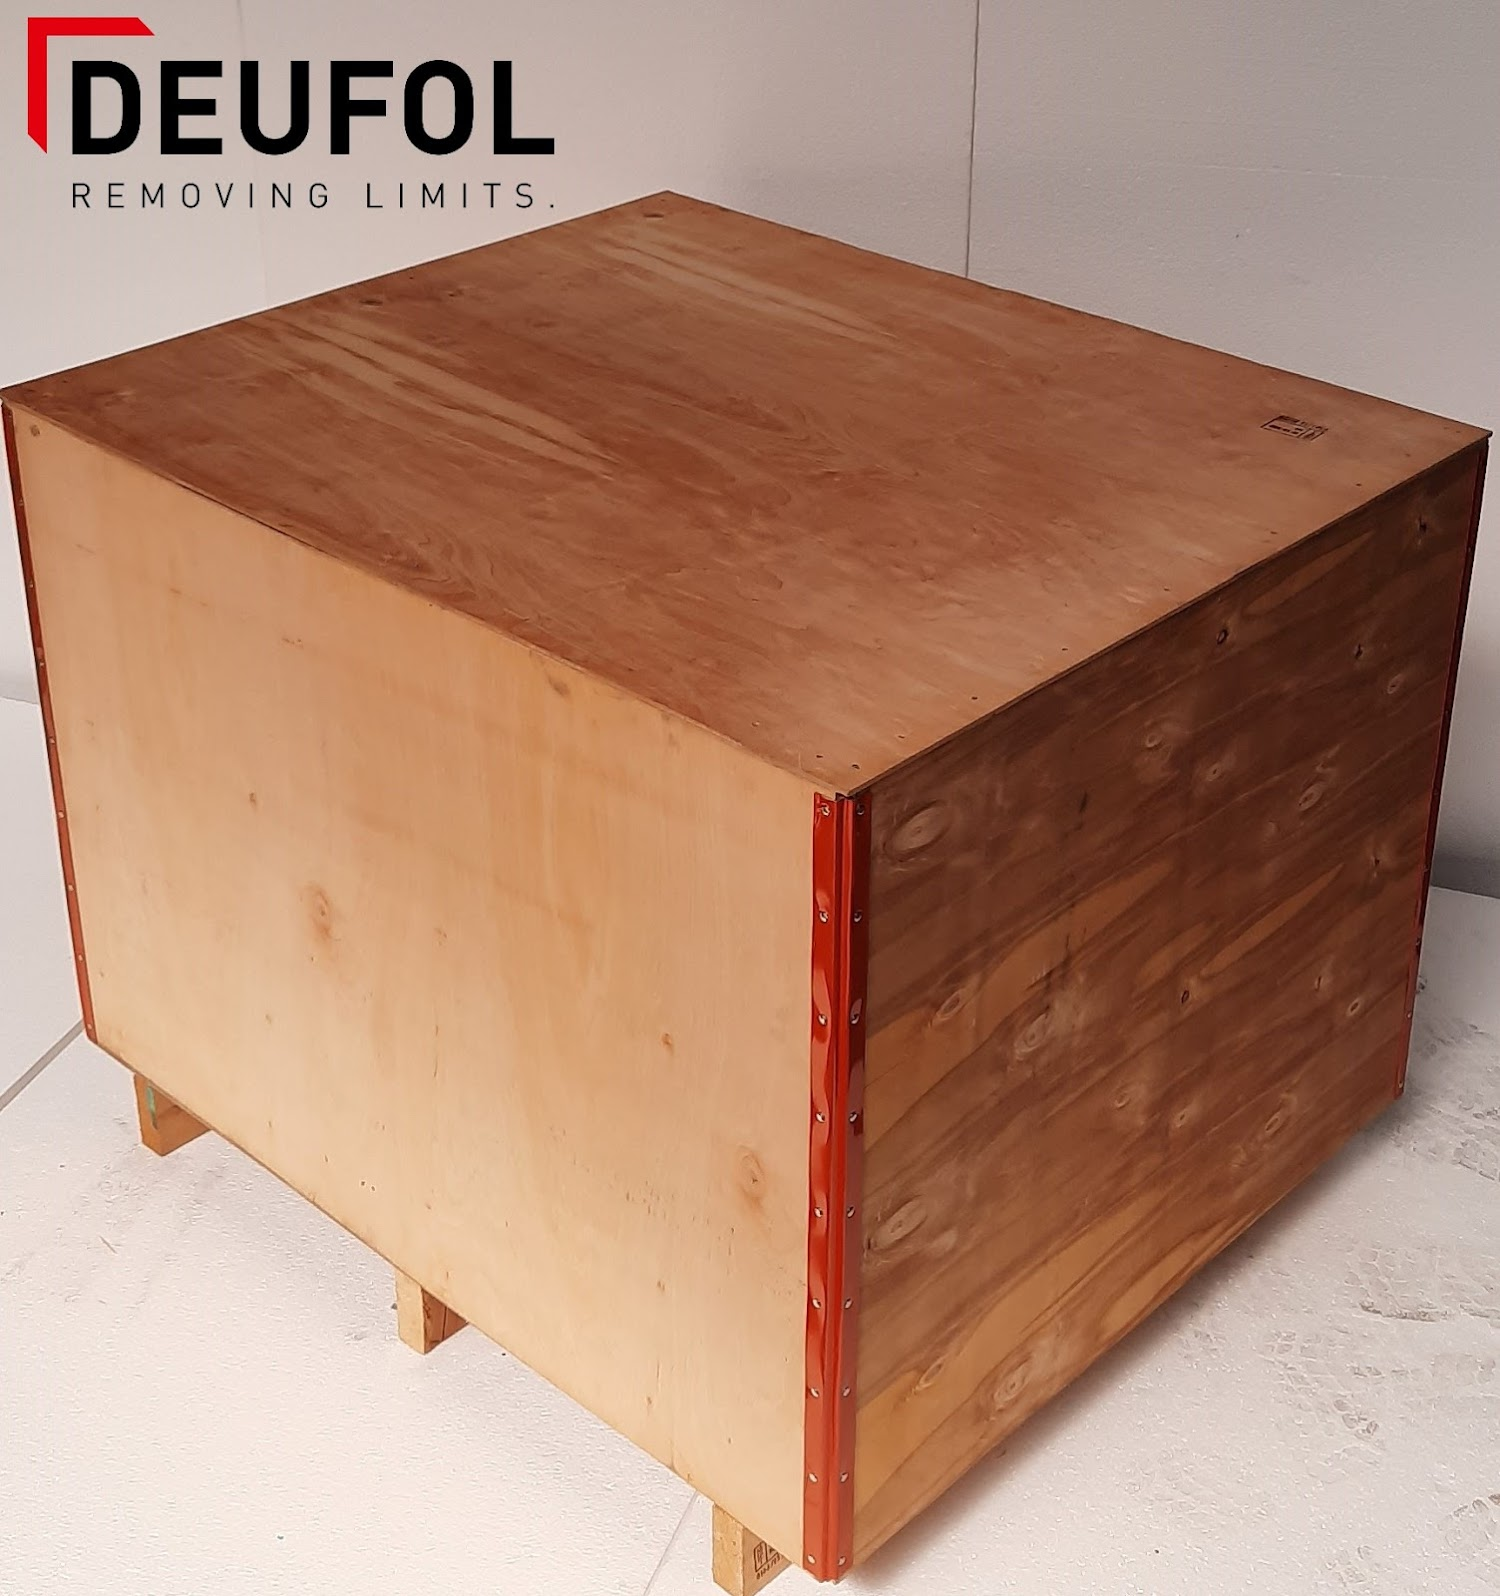 Wooden transport box with lid 120x100x92cm